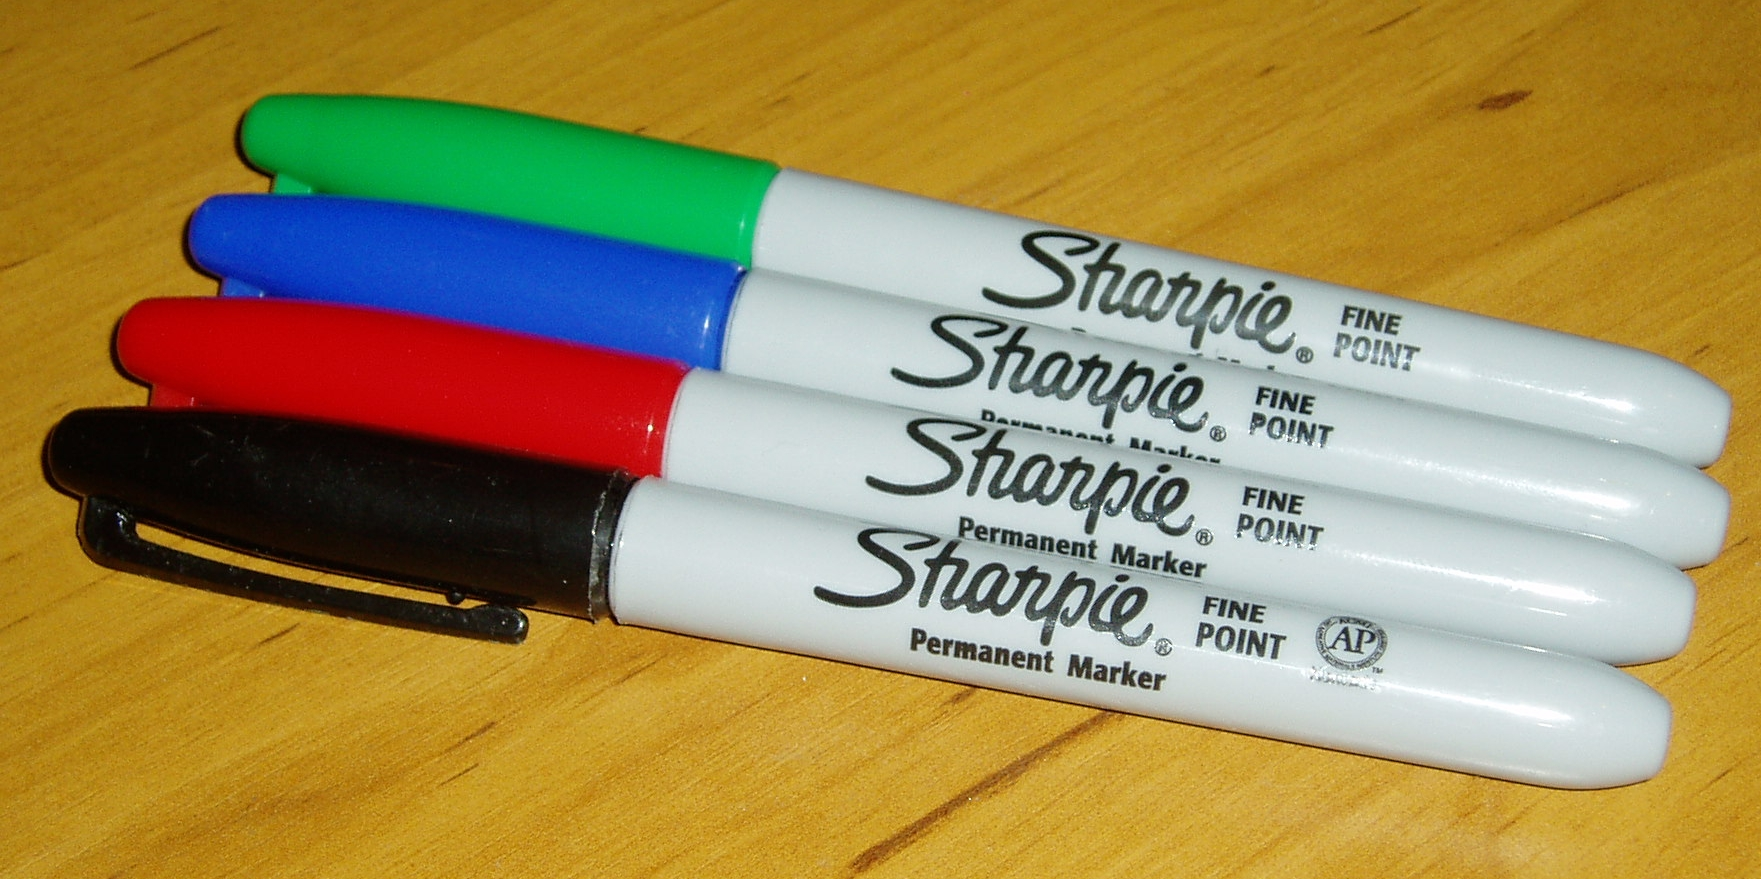 Coloured_sharpie_markers.jpg